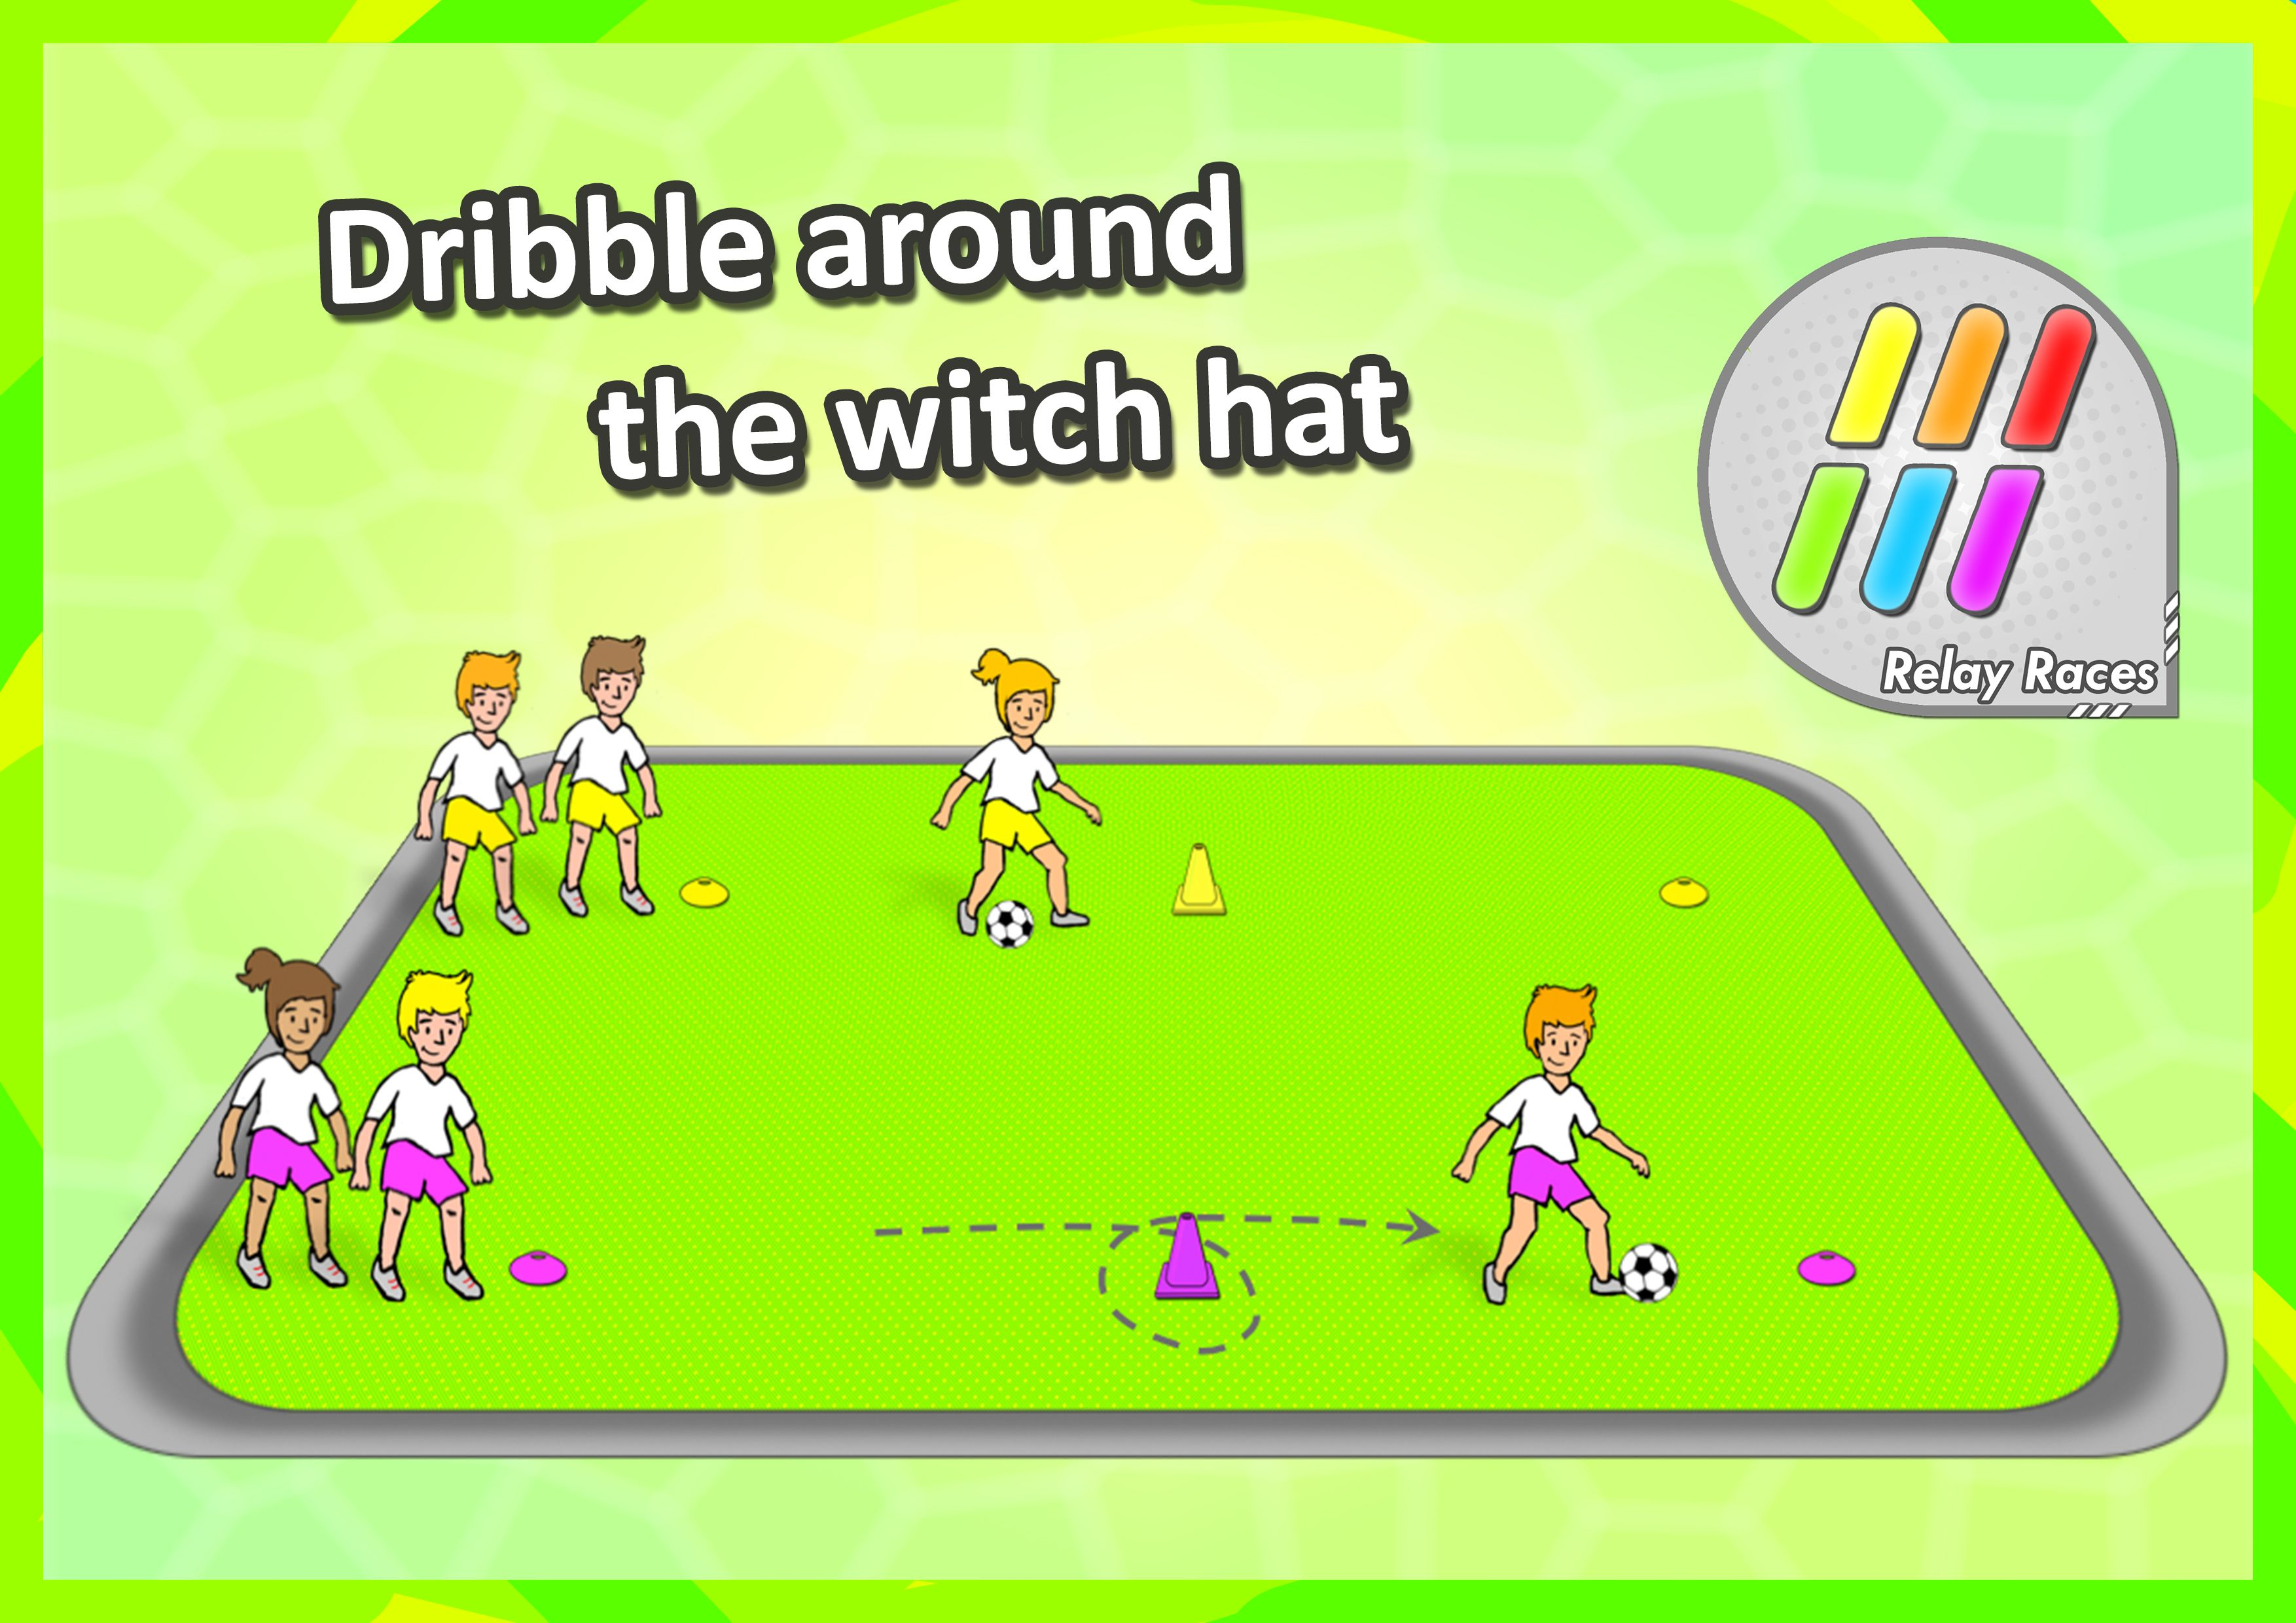 Pe Sport Relay Race Activities The Rapid Relay Races Pe Sport Pack Grades K 3 Soccer Drills For Kids Soccer Lessons Soccer Coaching